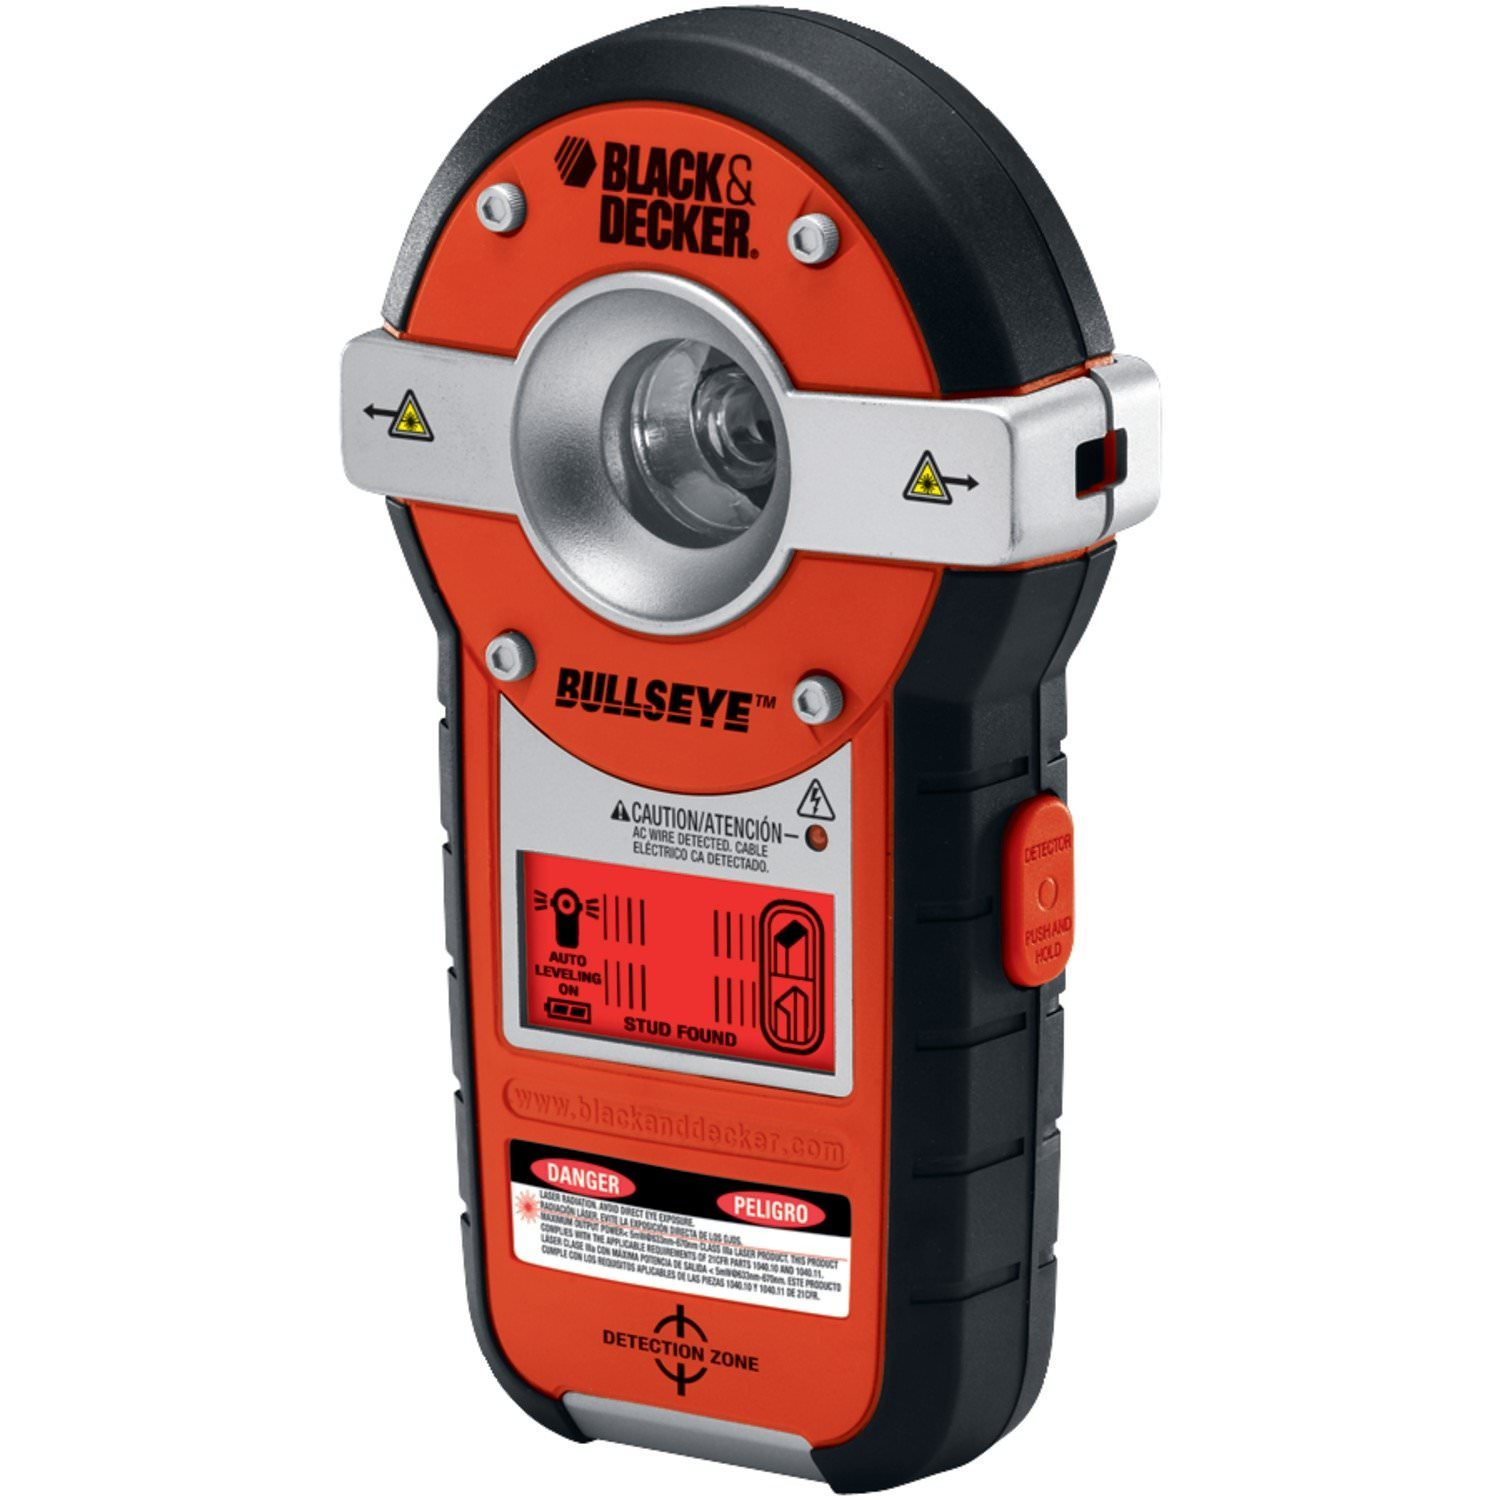 Black & Decker Bulls Eye Auto-Leveling Laser With Stud Sensor